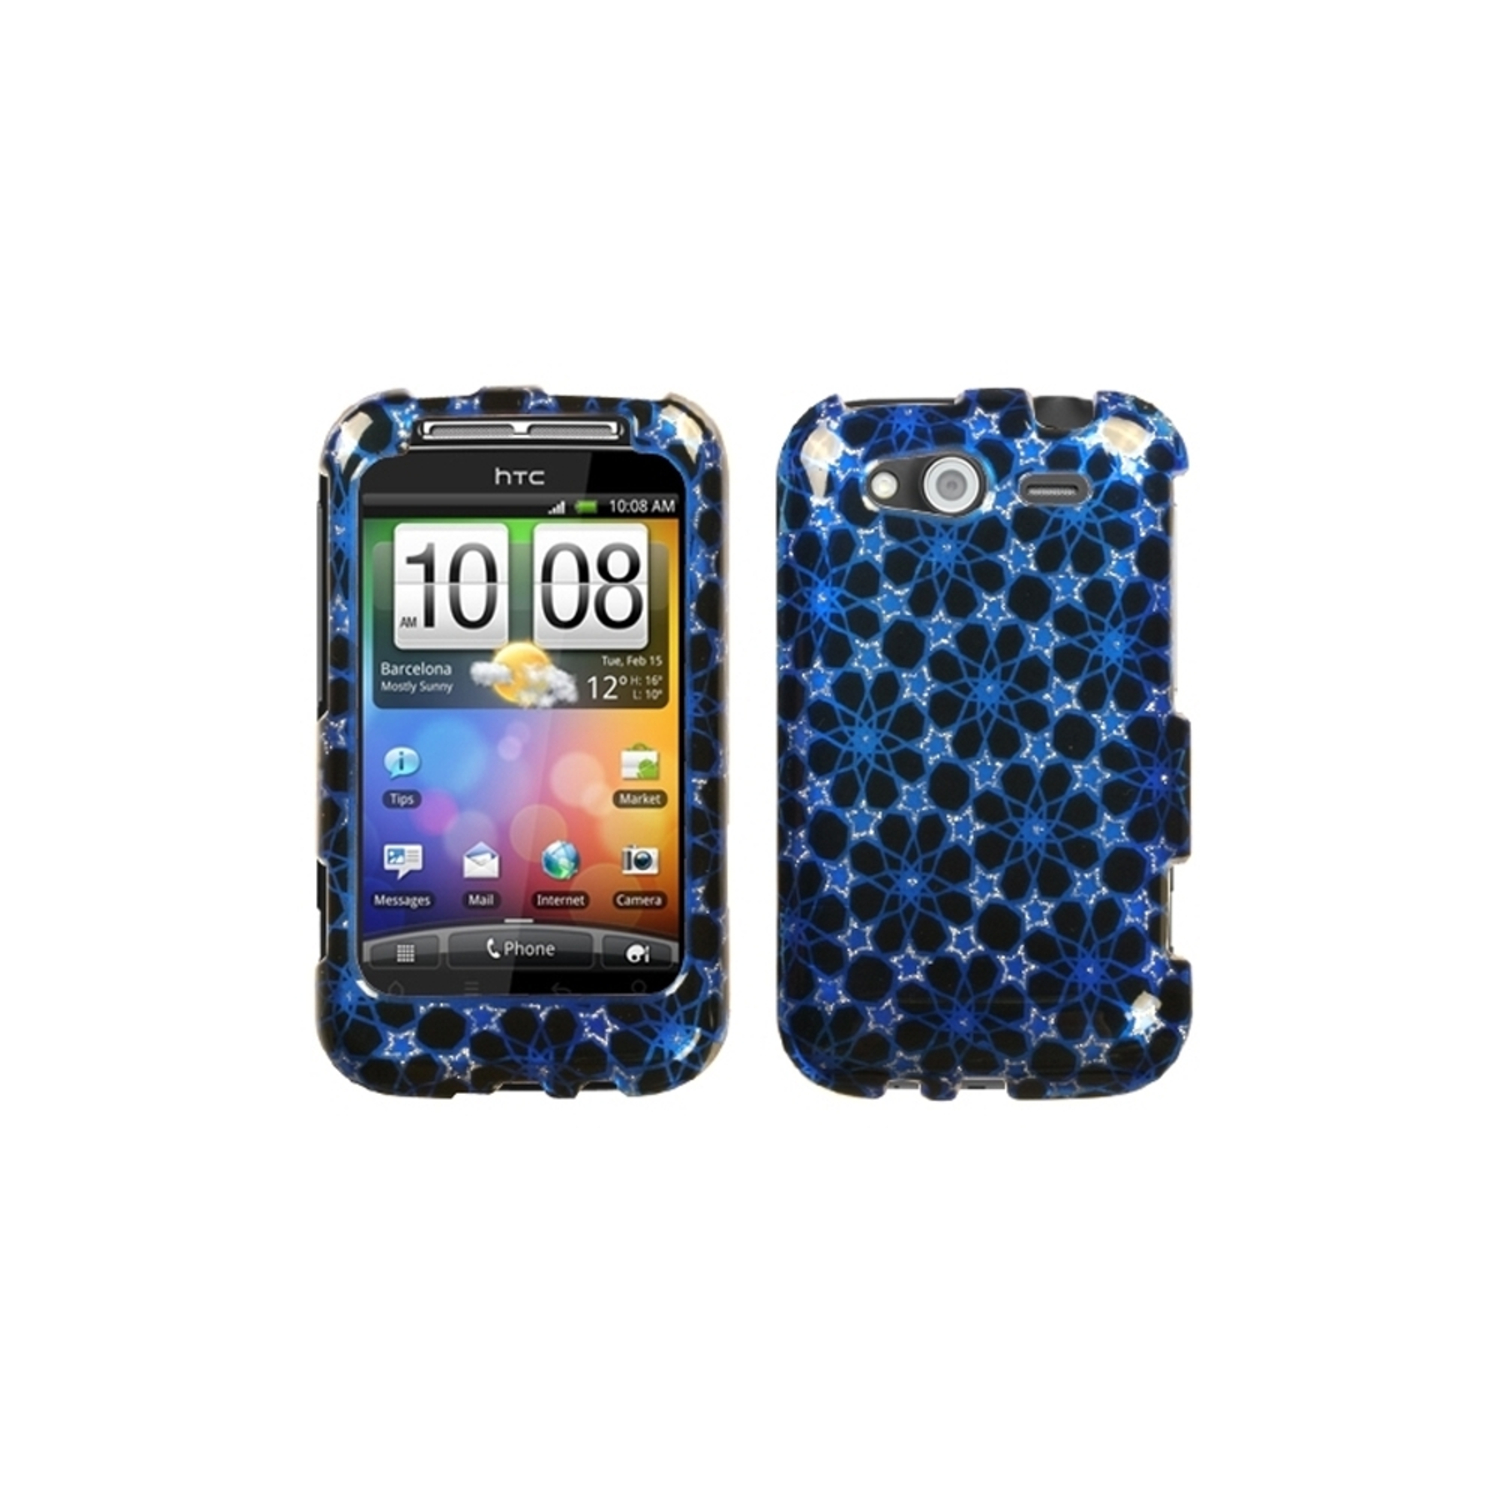 Insten Twinkle Stars/Blue (2D Silver) Sparkle Phone Case for HTC: Wildfire S (GSM), Wildfire S (CDMA)